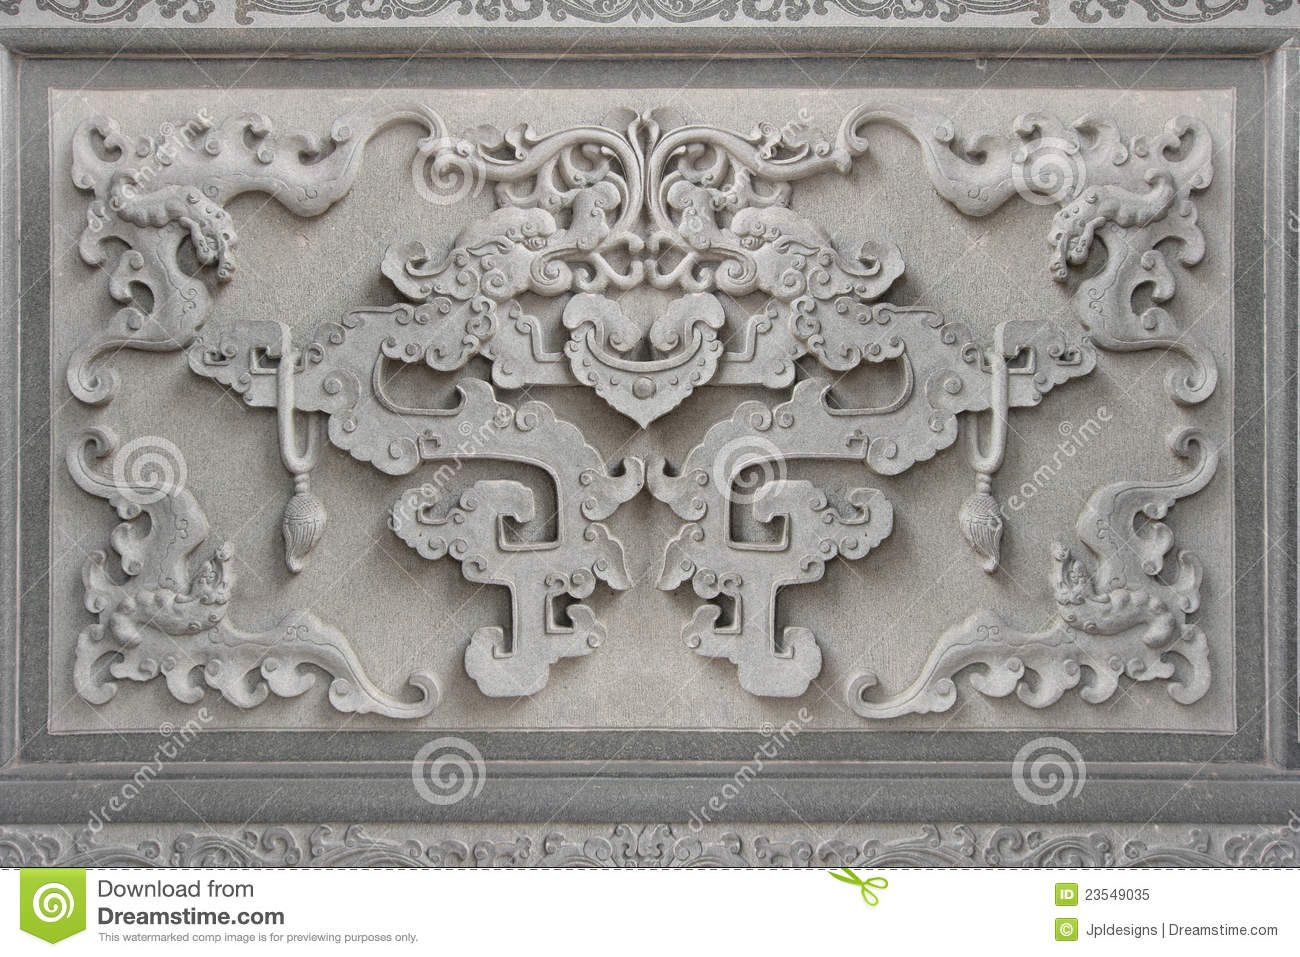 Chinese bat symbol wall stone carving stock image